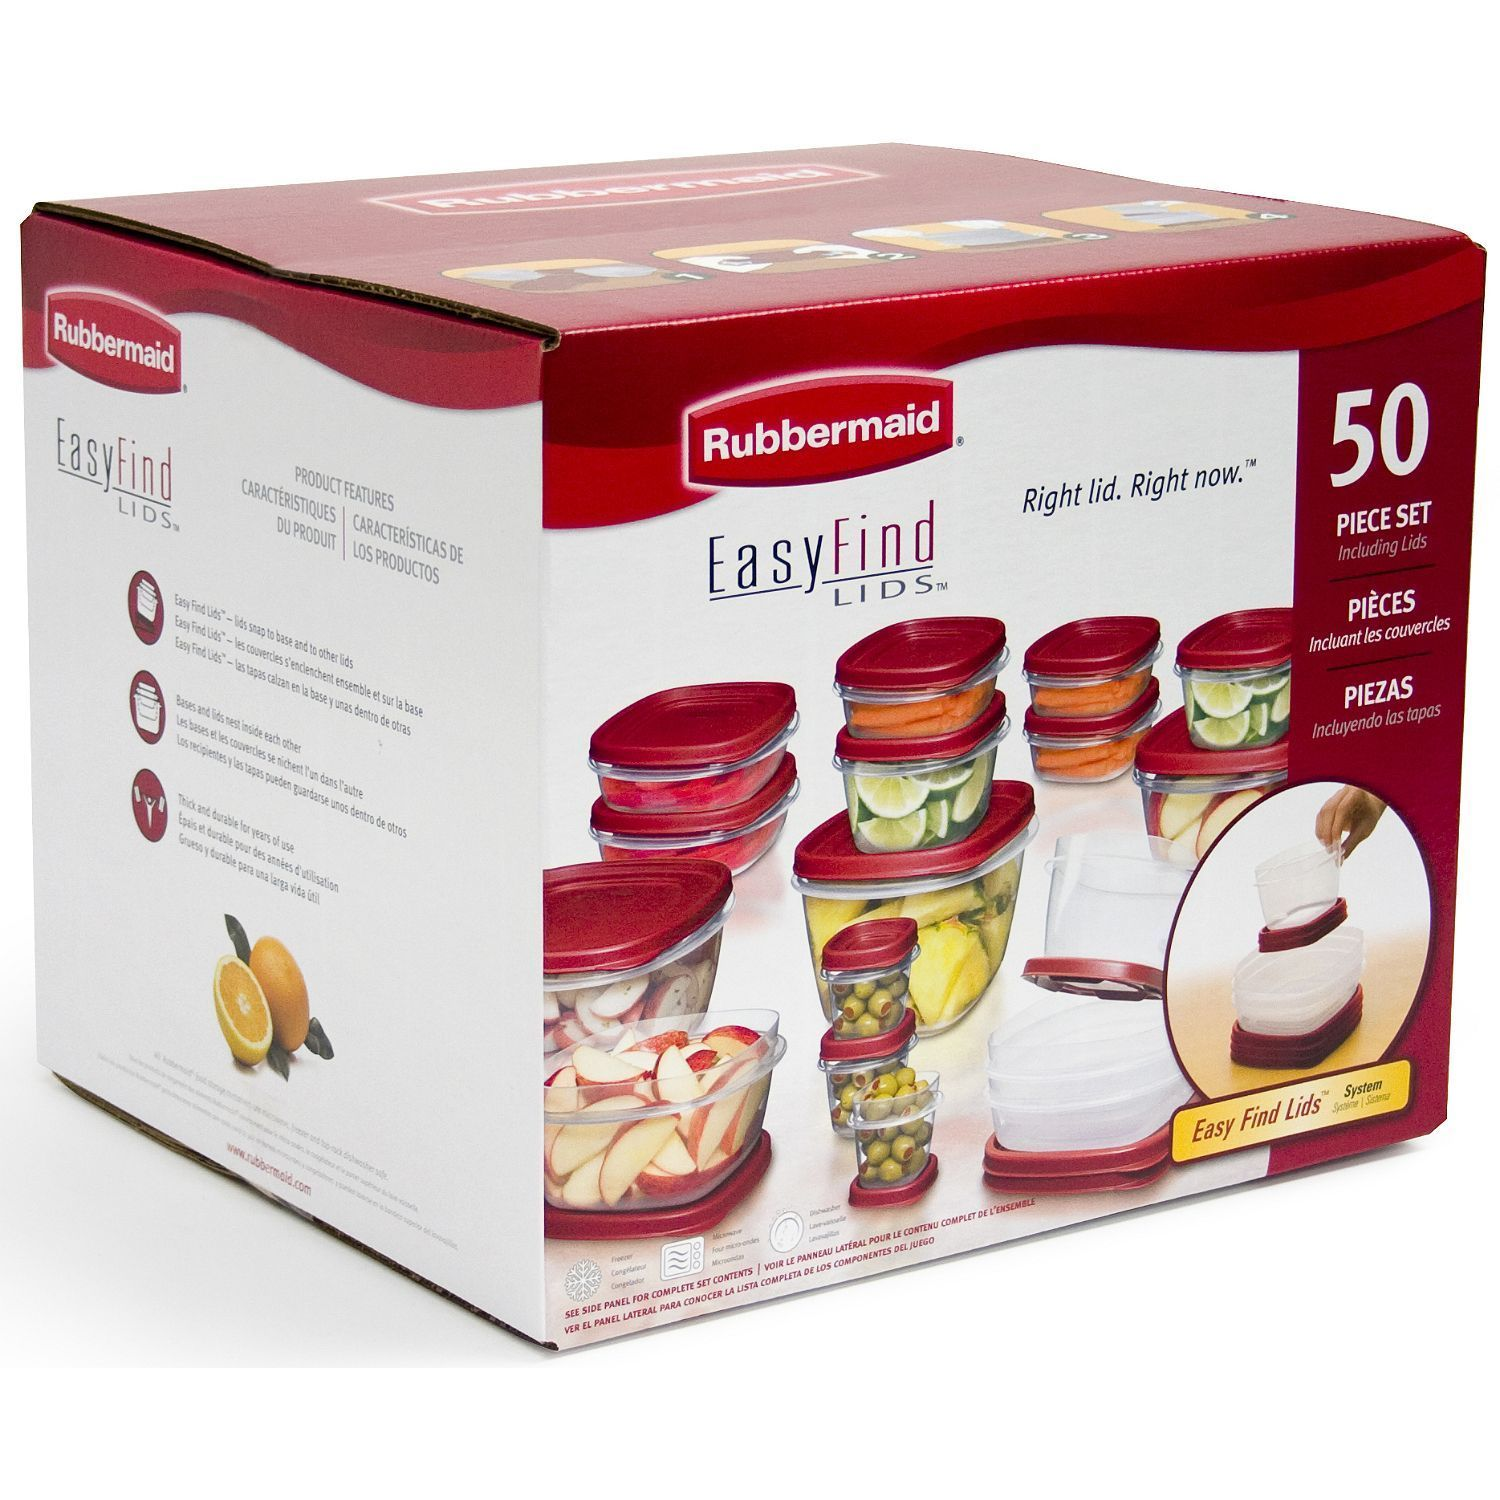 50pc Rubbermaid EasyFind Lids Food Storage Set lot Containers Plastic 1